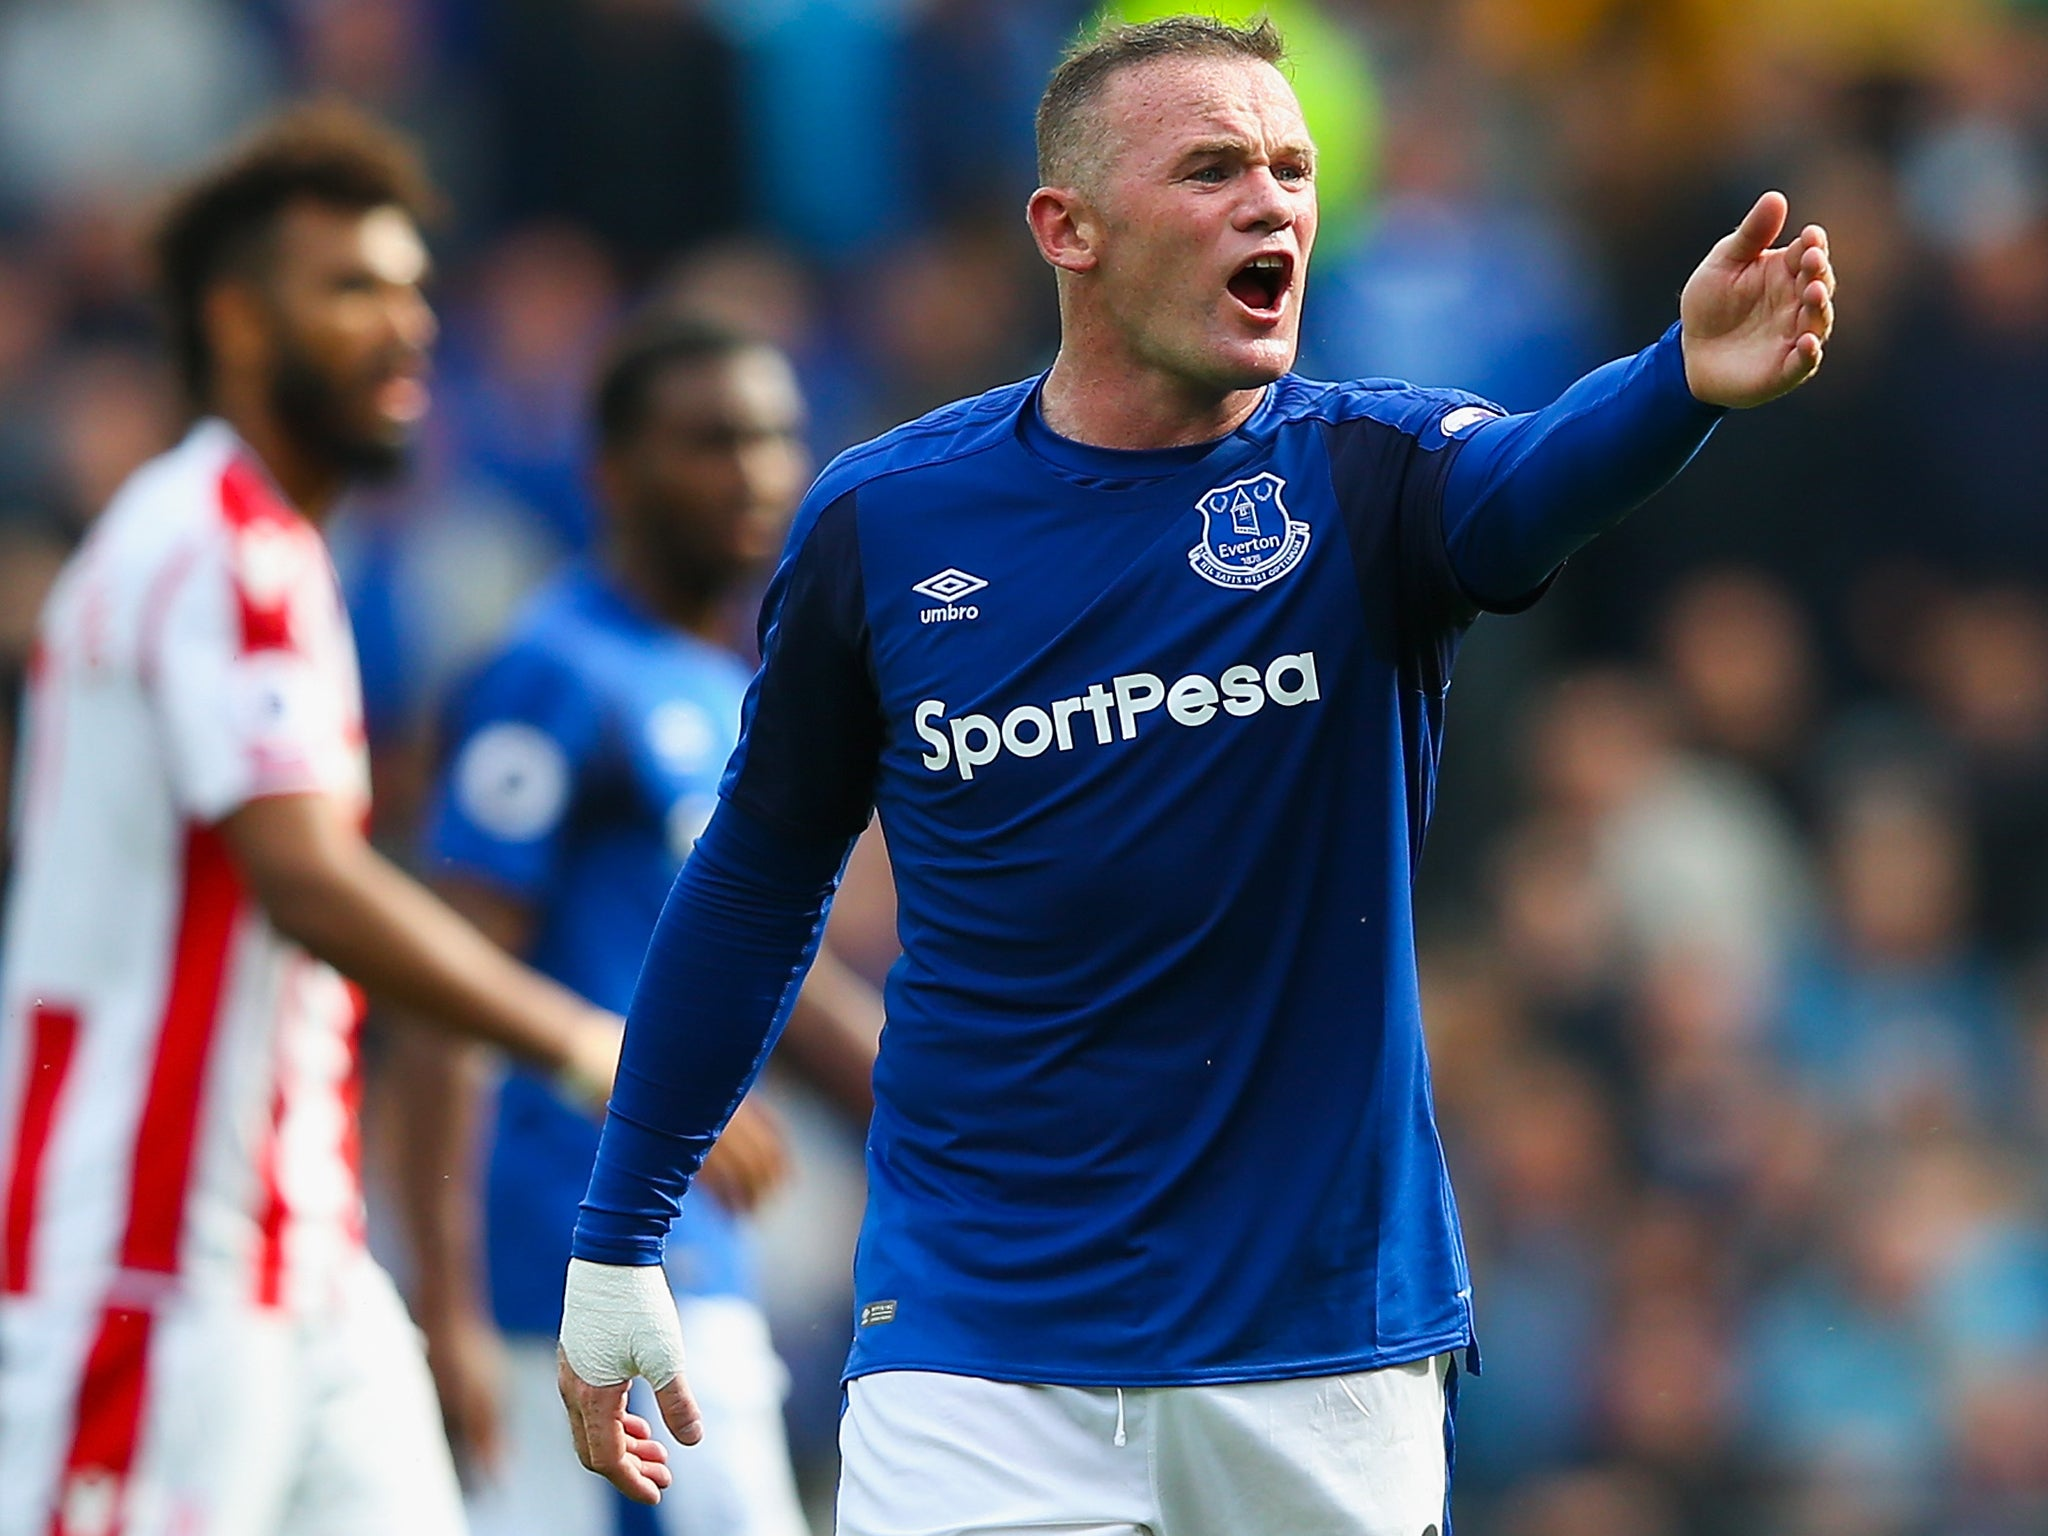 How gambling has replaced beer on Premier League shirts this season